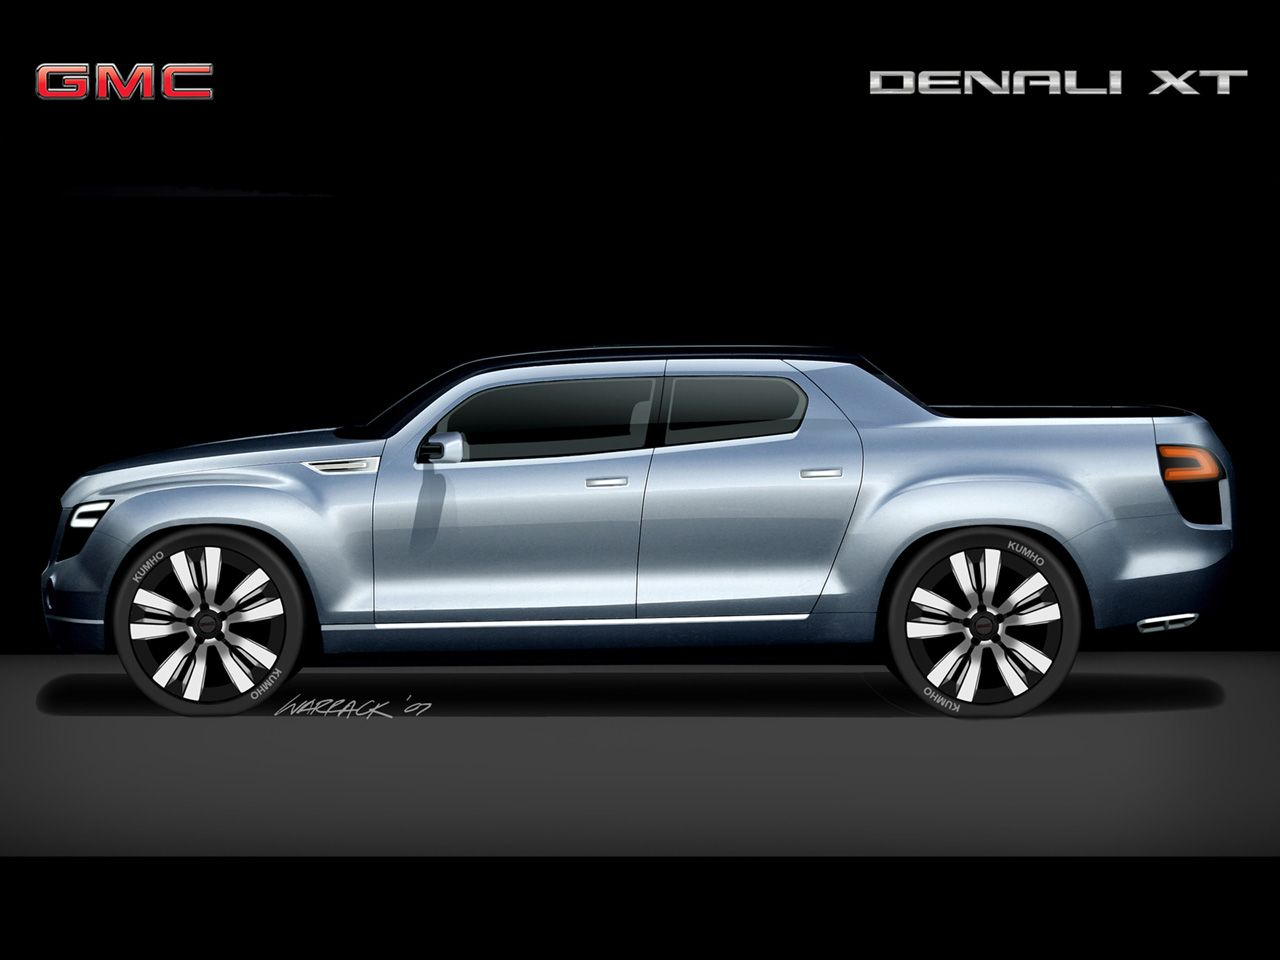 Gmc denali photo - 1